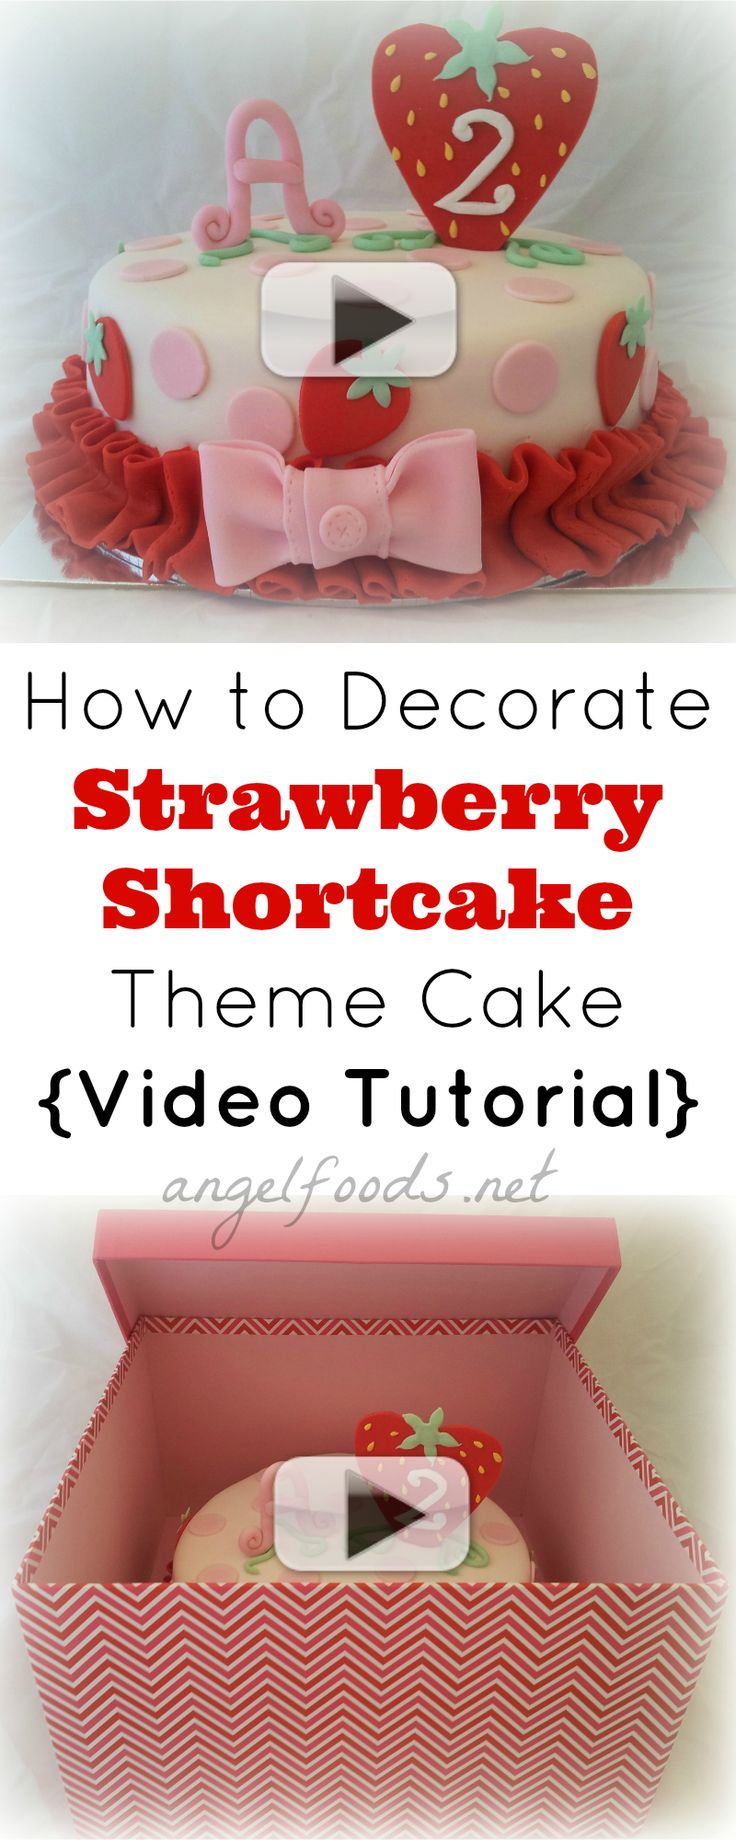 How to Decorate a Strawberry Shortcake Themed Cake | I previously had an order for a 'vintage' or old fashioned strawberry shortcake style/themed cake. | http://angelfoods.net/decorate-strawberry-shortcake-cake